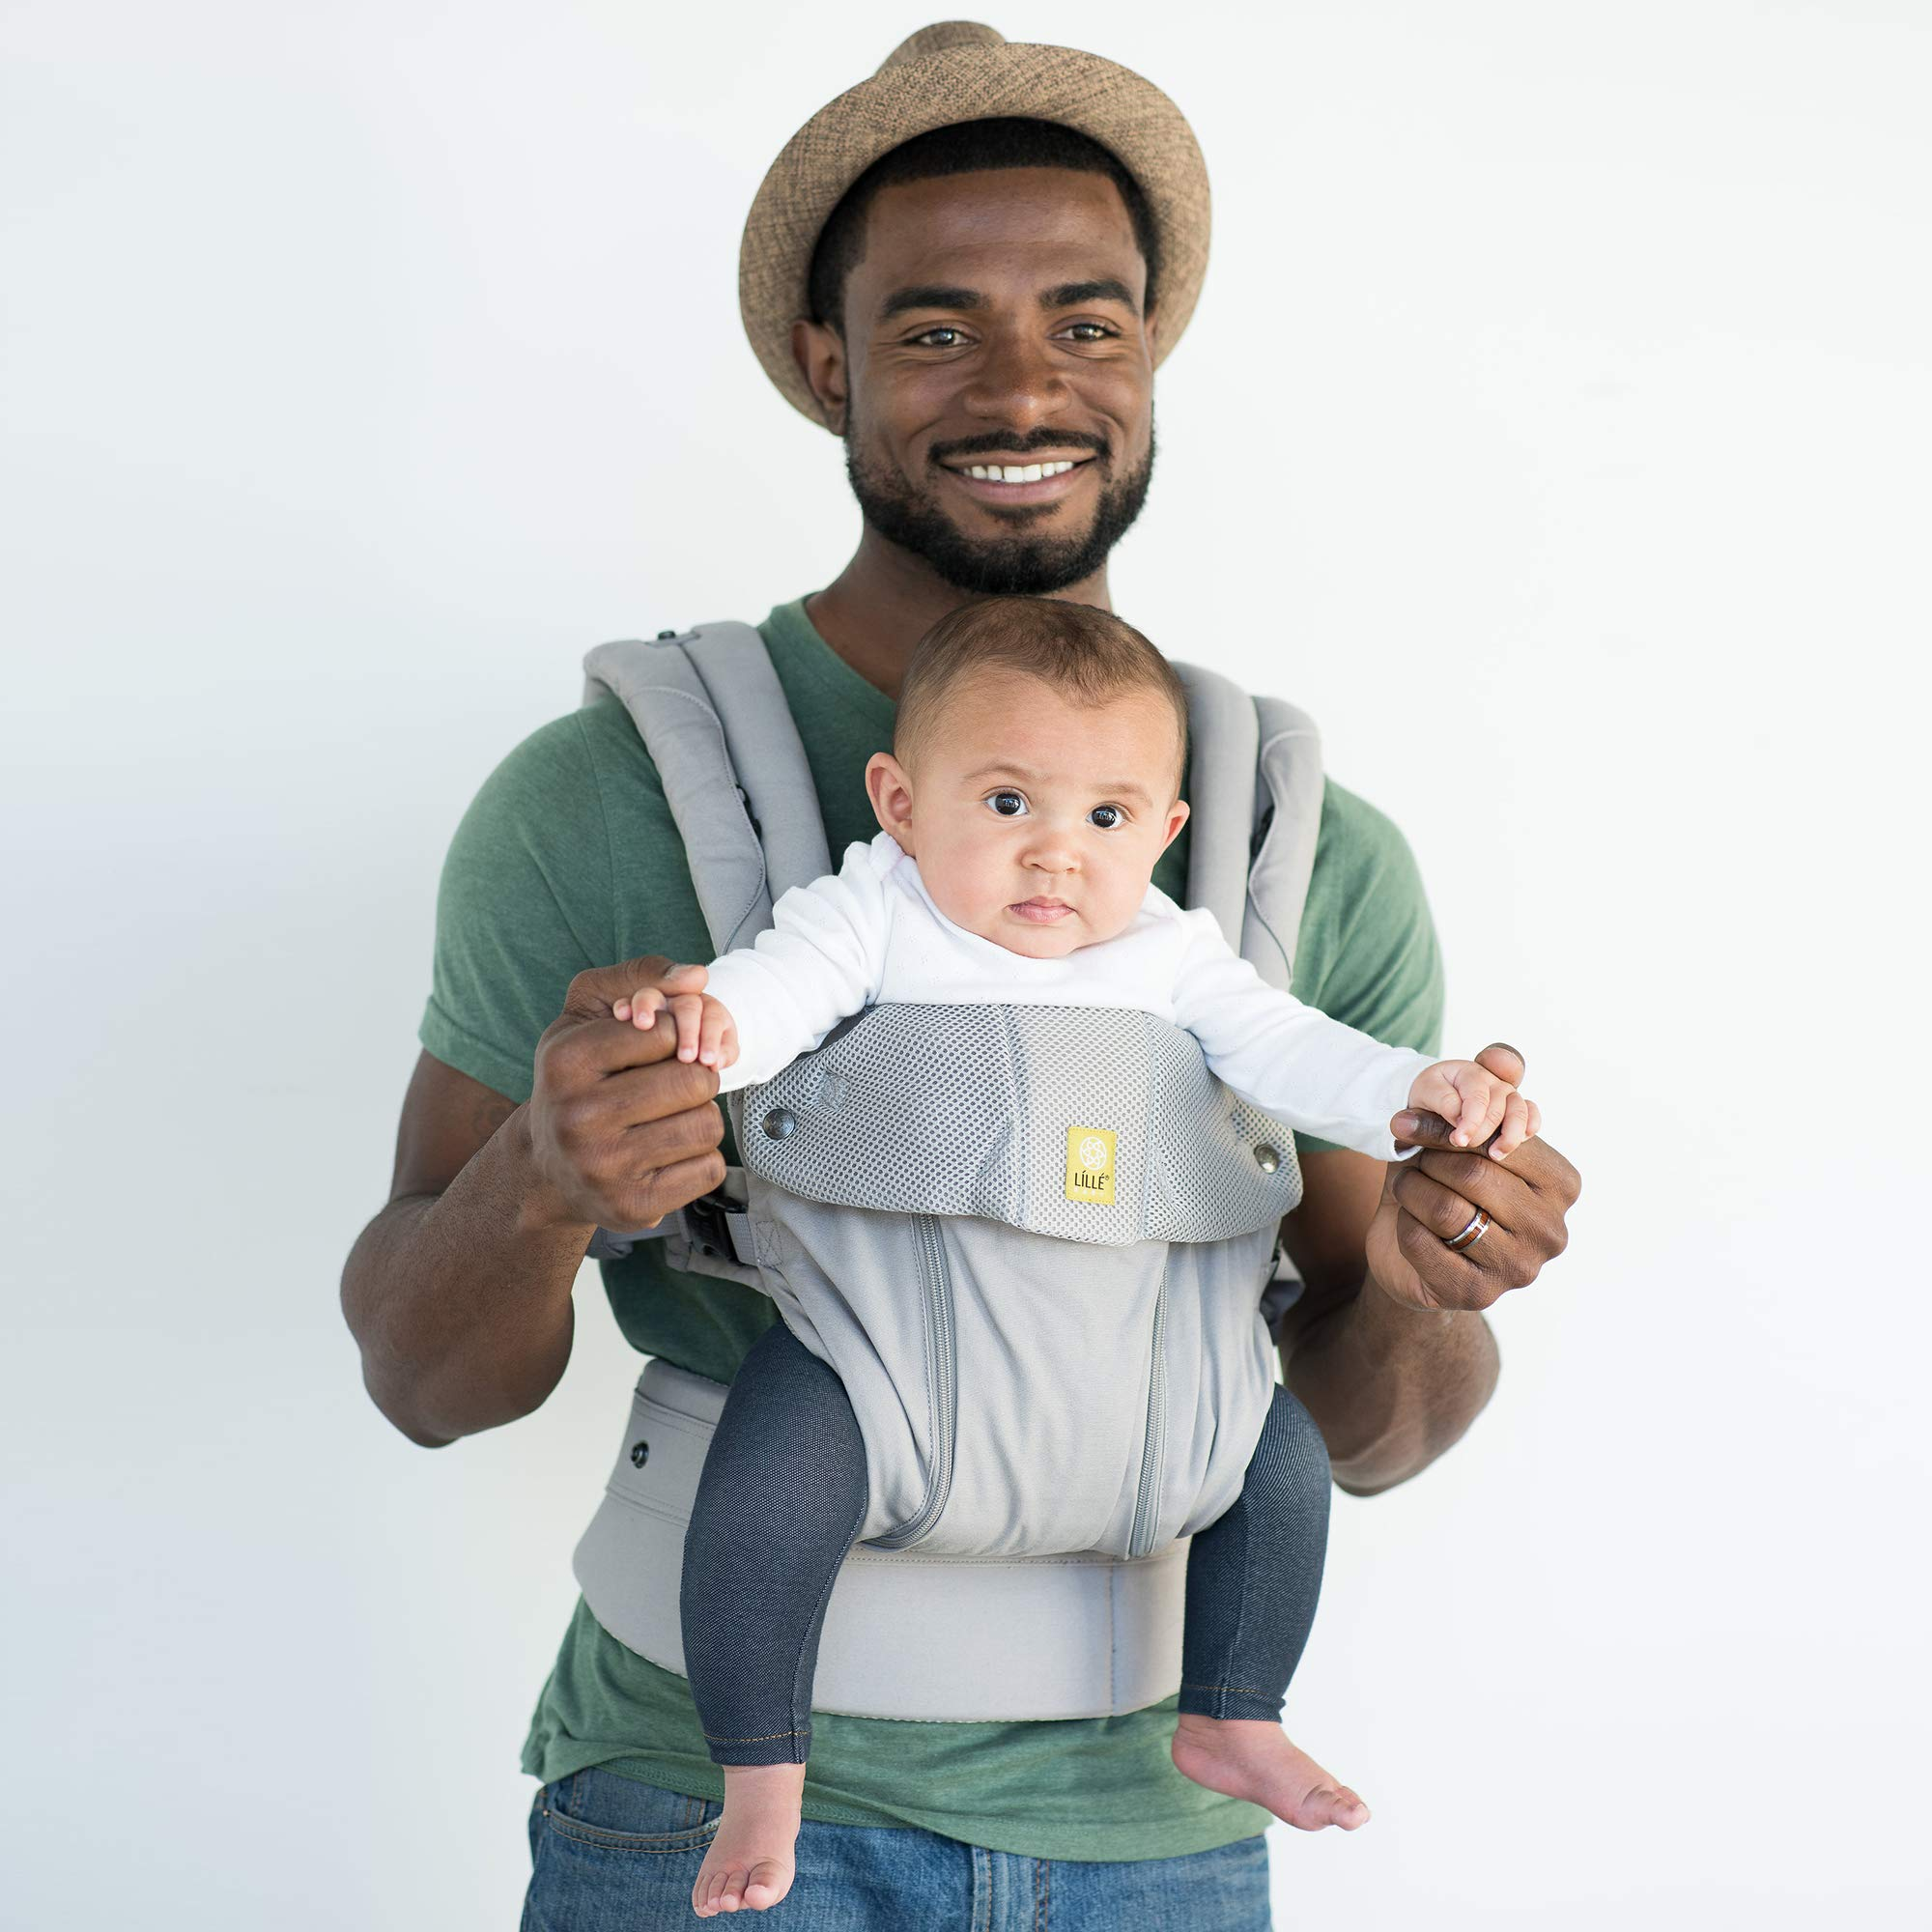 LILLEbaby SIX-Position, 360° Ergonomic Baby & Child Carrier by LILLEbaby – The COMPLETE All Seasons (Stone) by LILLEbaby (Image #7)